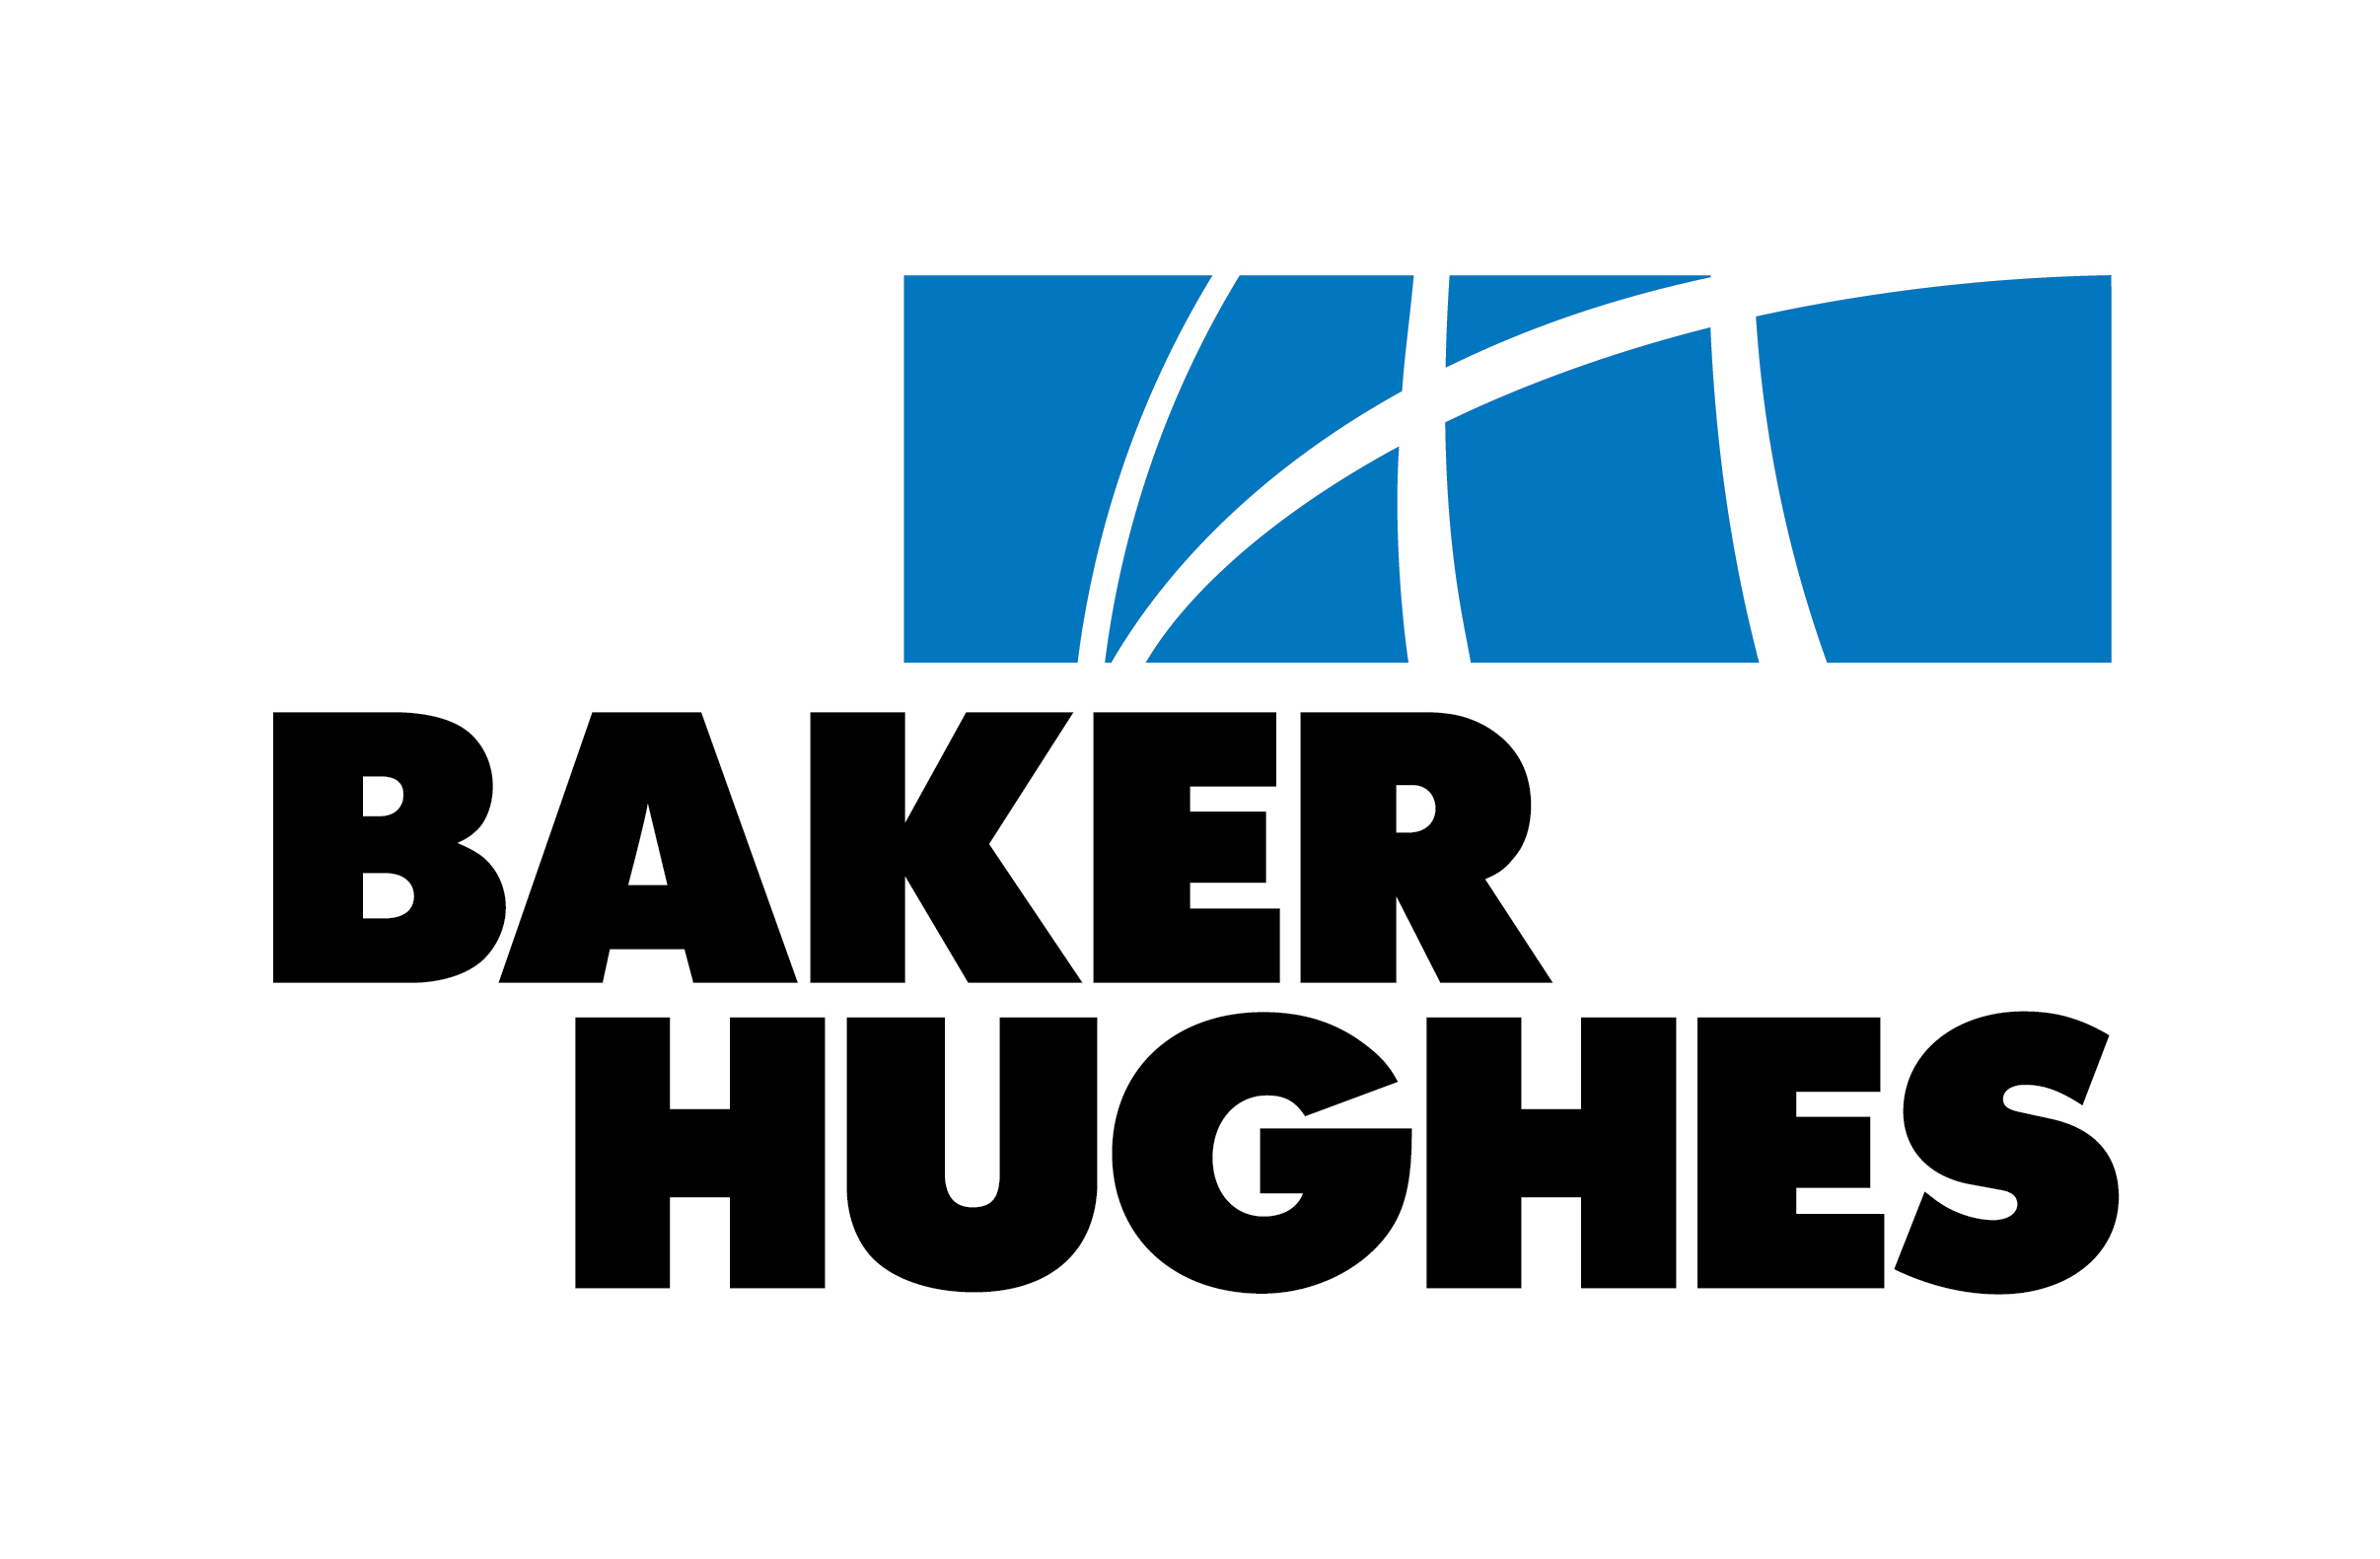 Baker Hughes Introduces Revolutionary Multistage Fracturing